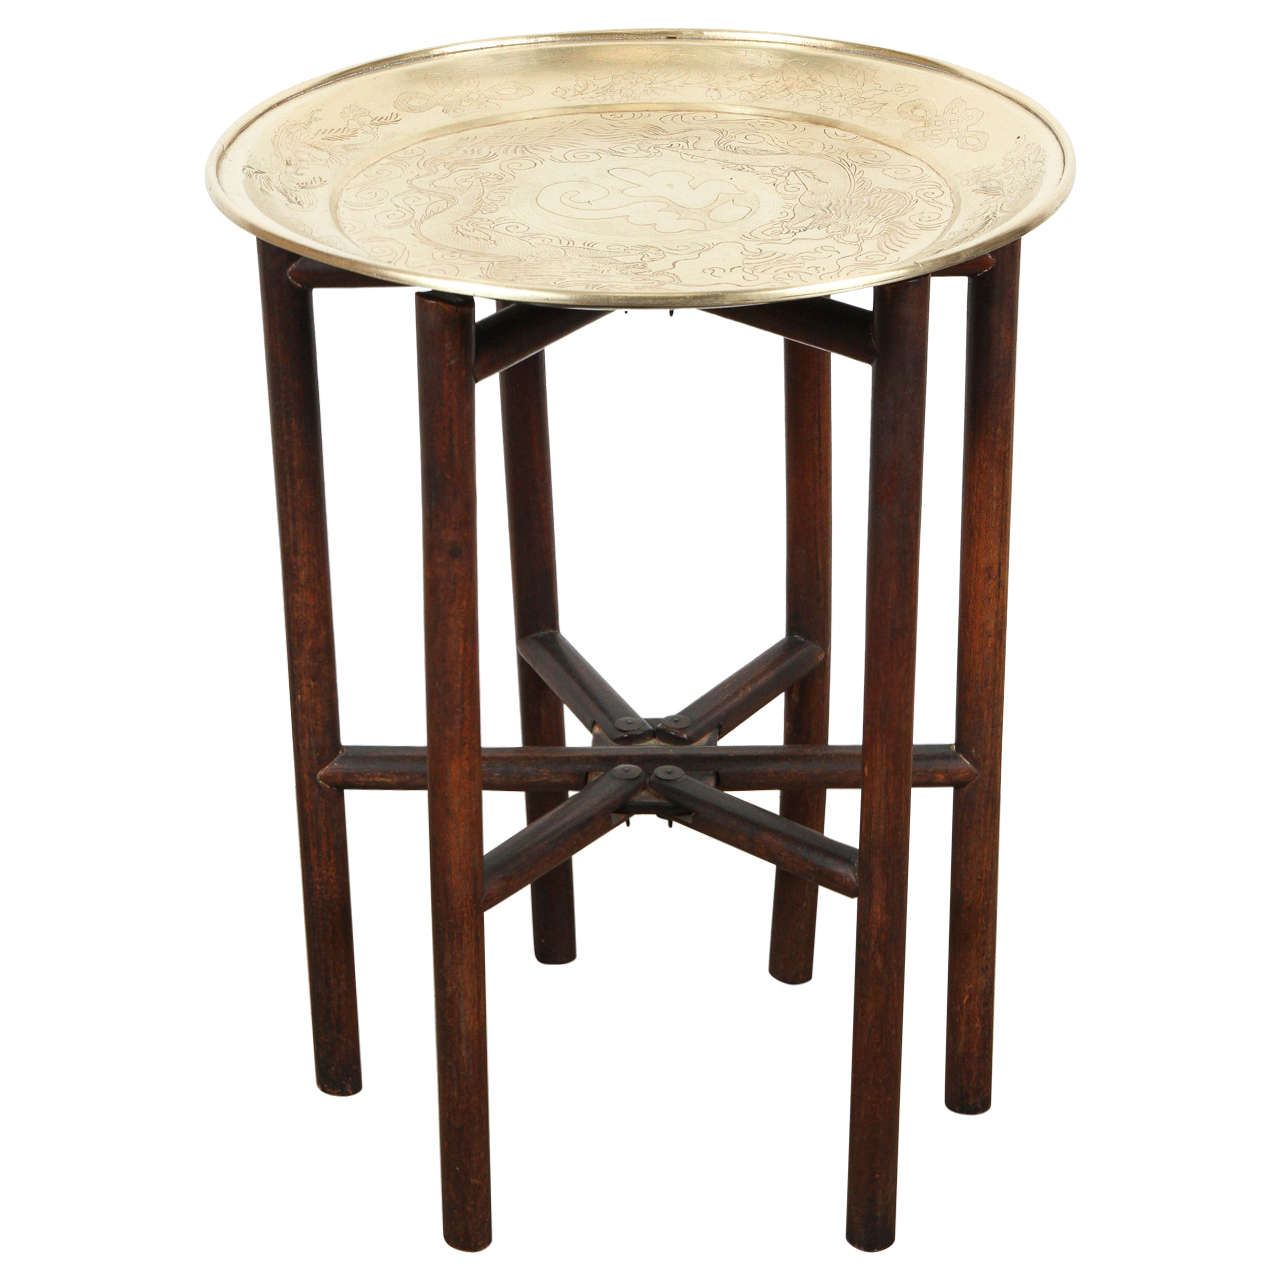 Brass tray side table on folding stand for sale at 1stdibs for Table retractable